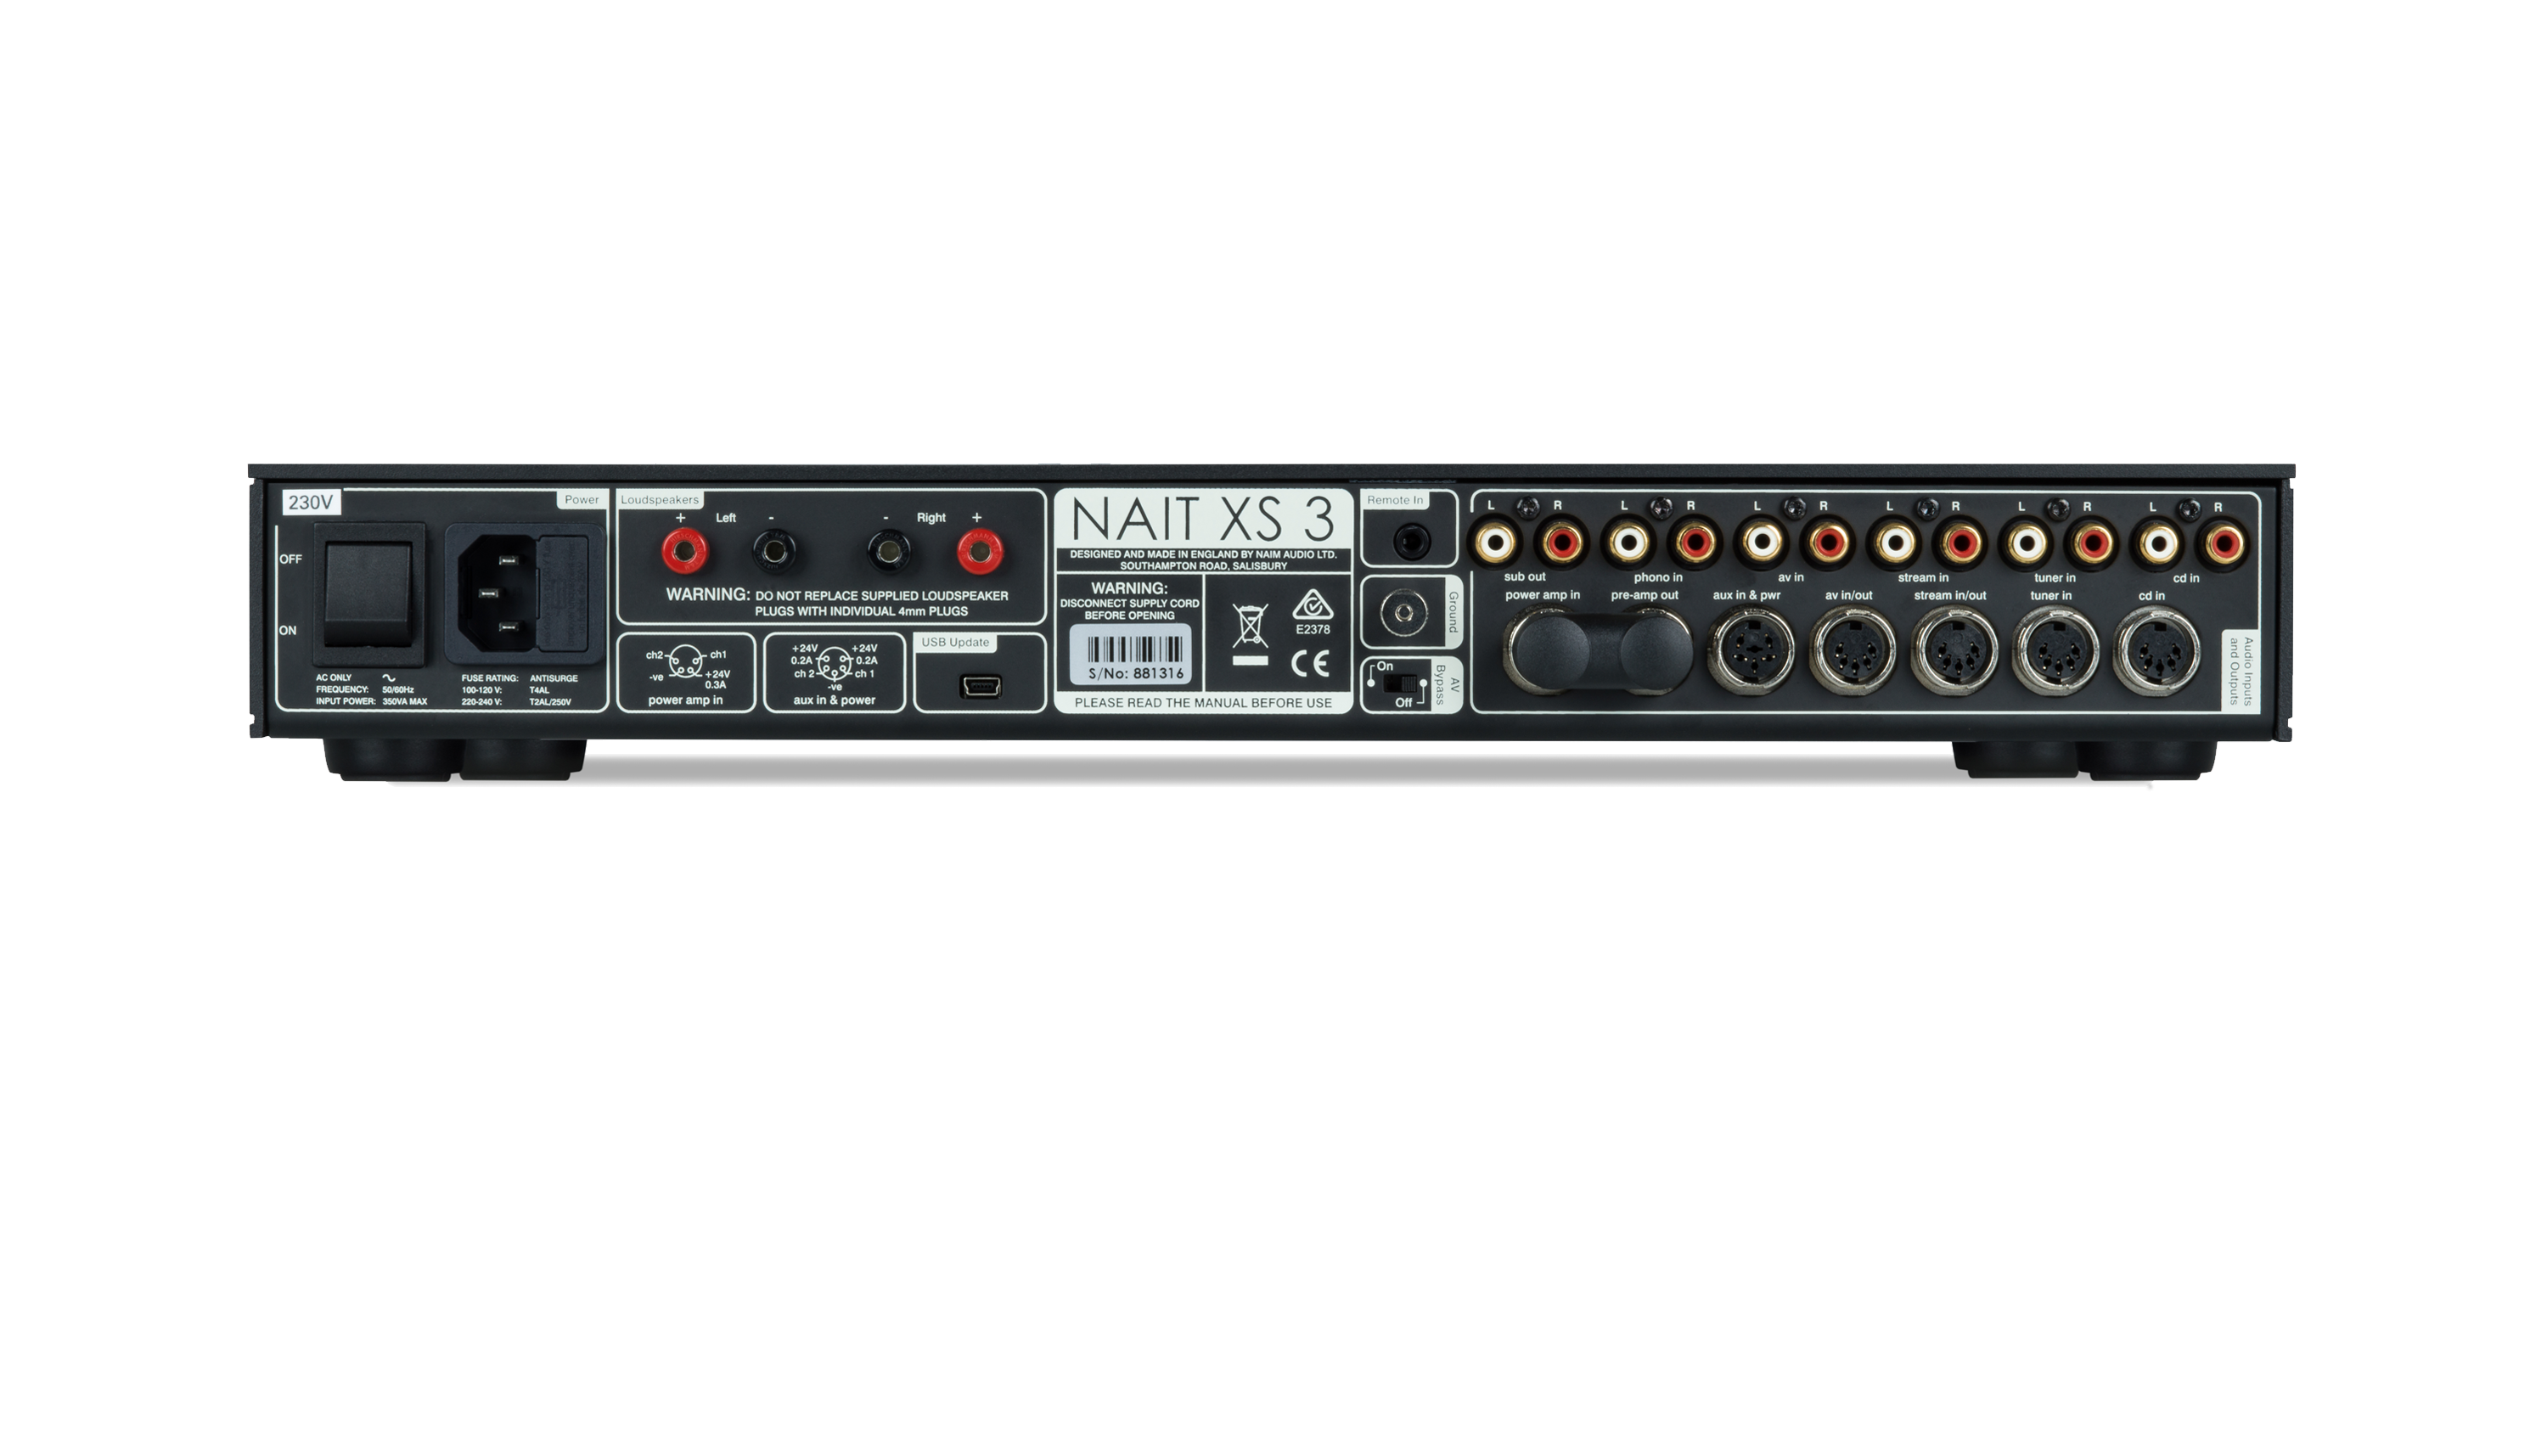 NAIT XS 3 Integrated Amplifier